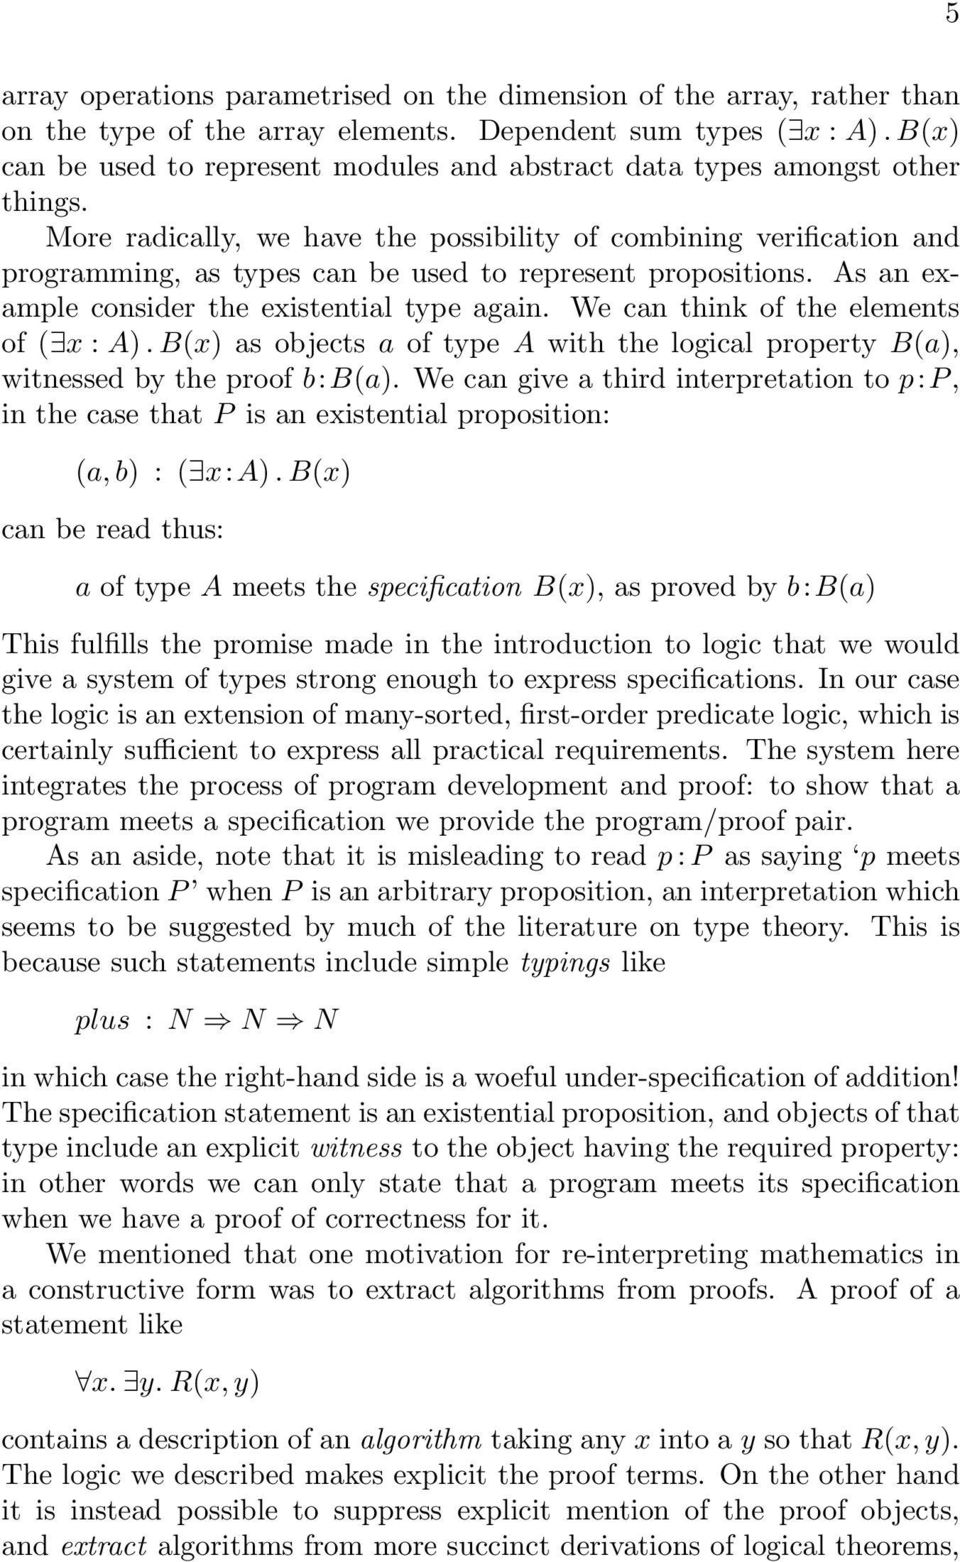 More radically, we have the possibility of combining verification and programming, as types can be used to represent propositions. As an example consider the existential type again.